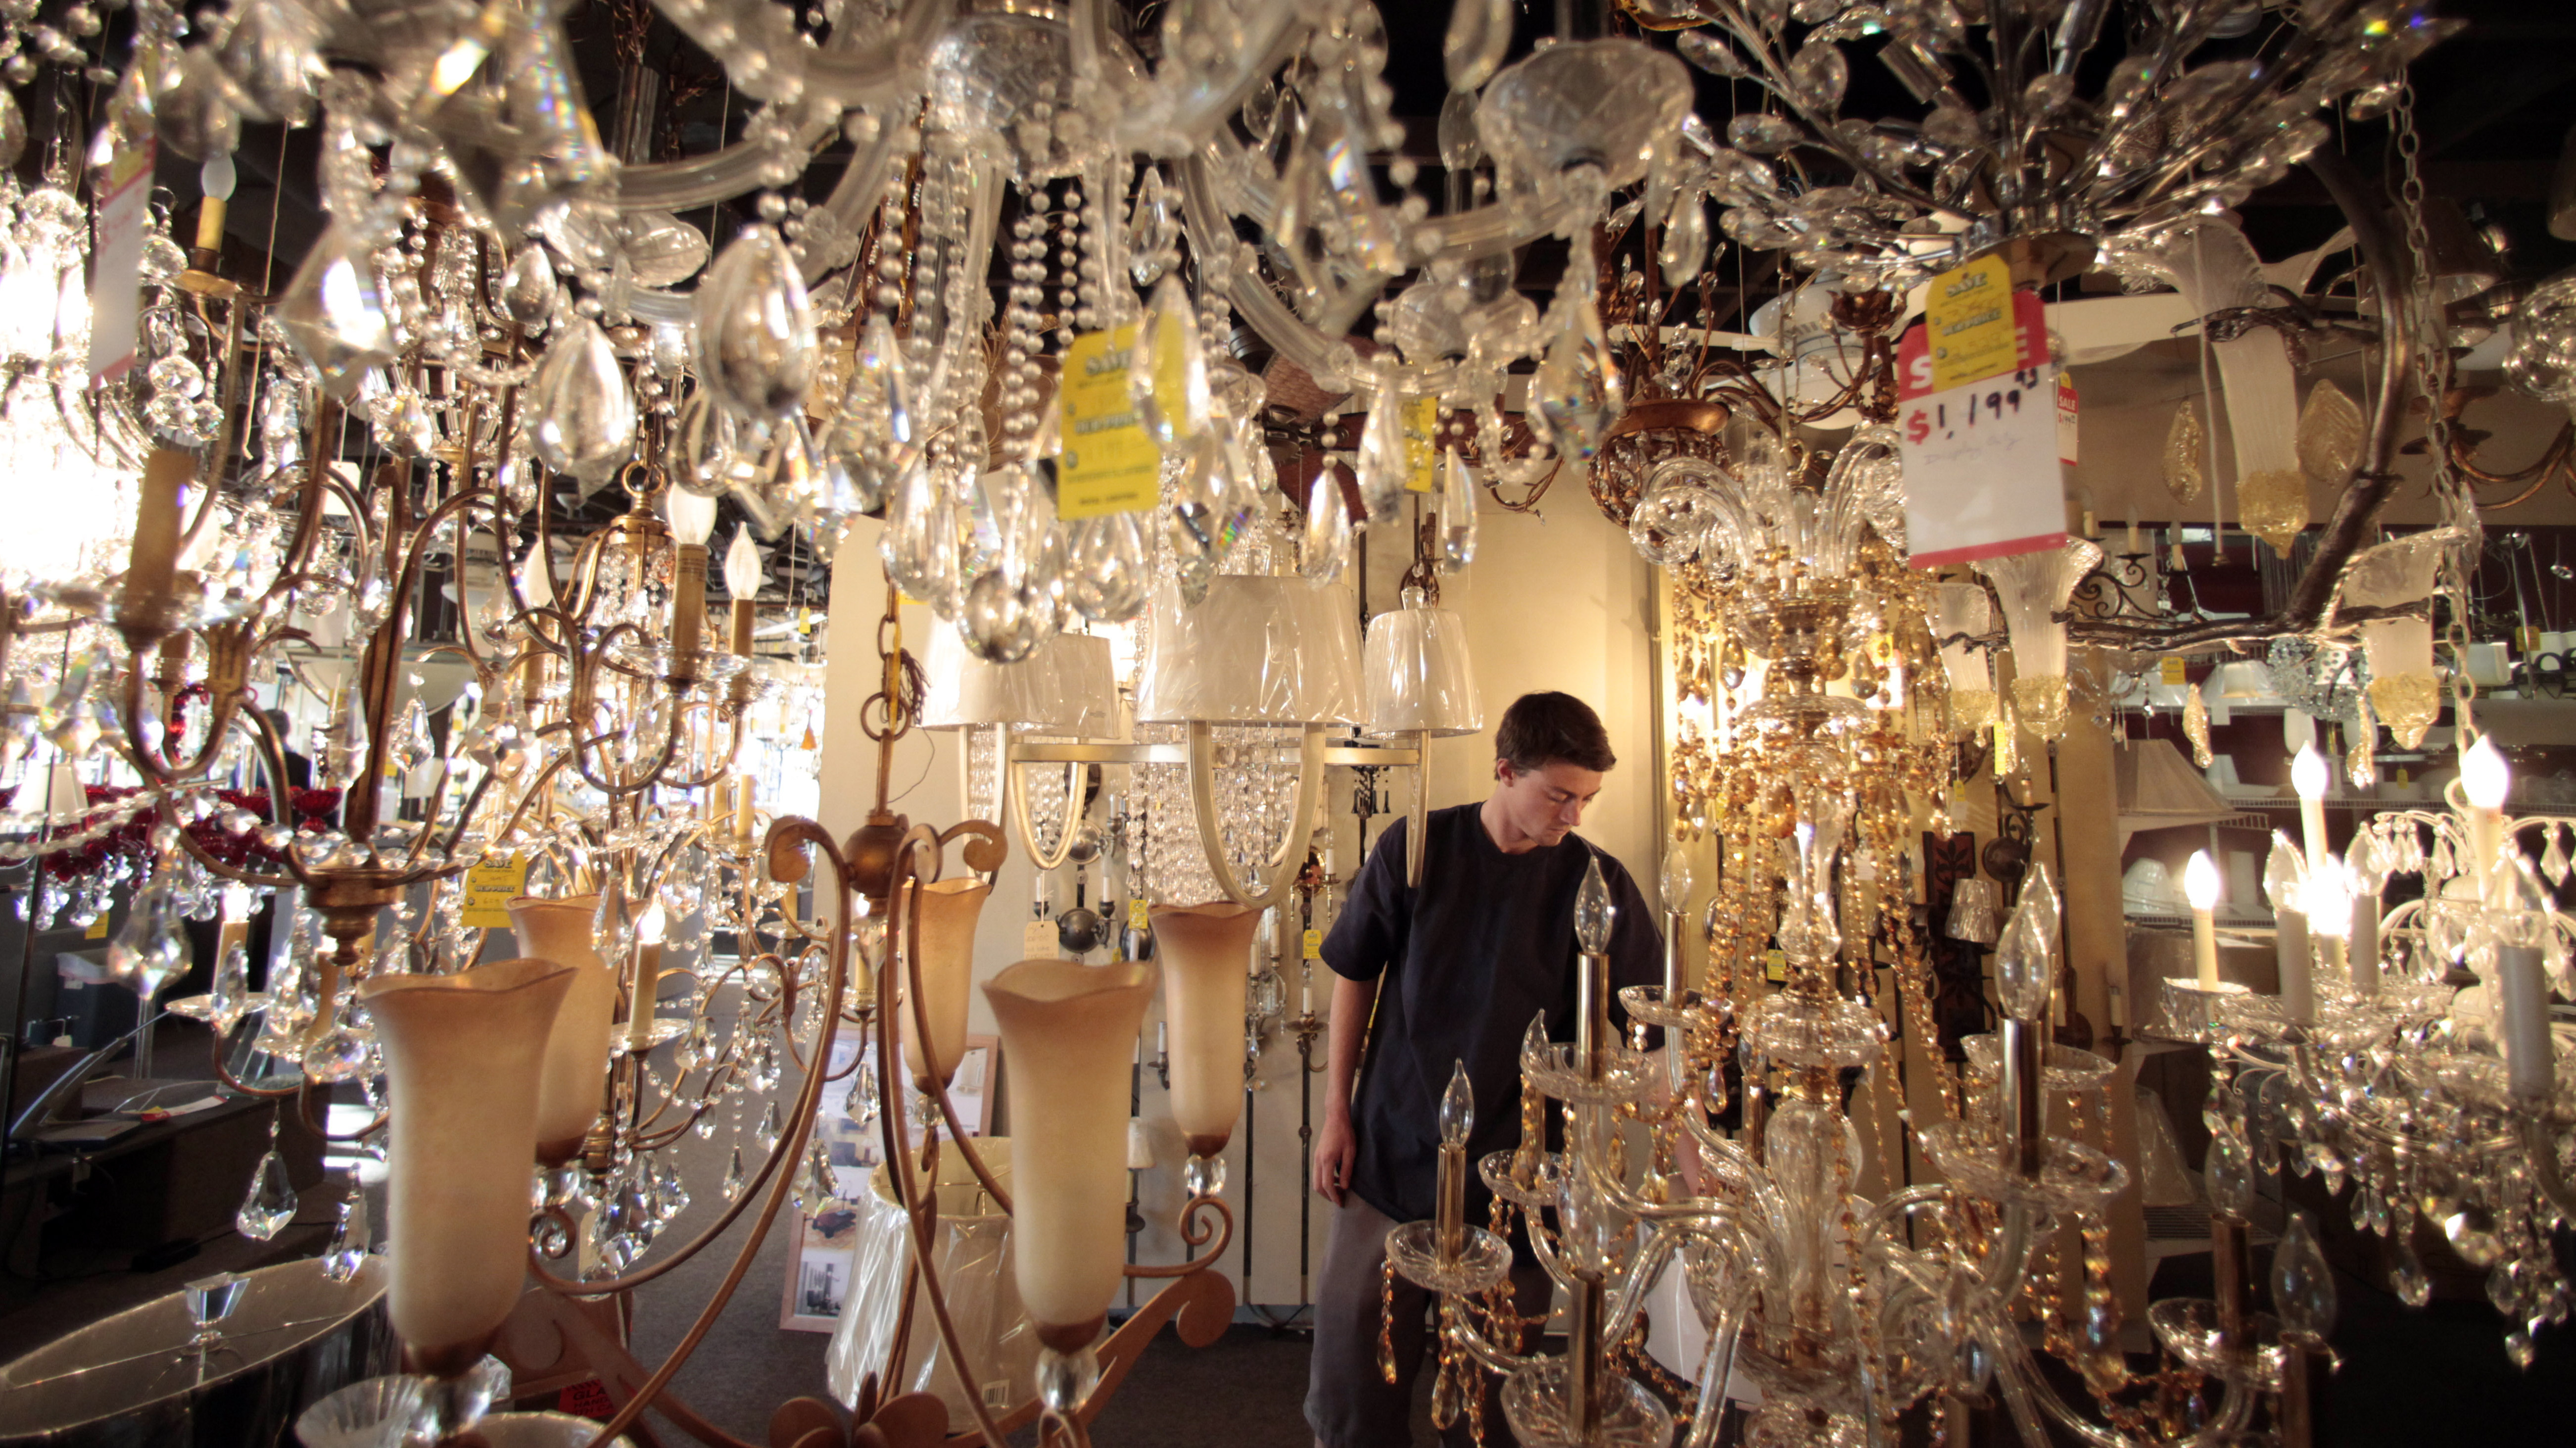 Jack George, an employee at Royal Lighting, looks at chandeliers using incandescent light bulbs at the store in Los Angeles. A federal judge is allowing California to enforce updated efficiency standards that will affect such specialty lightbulbs.